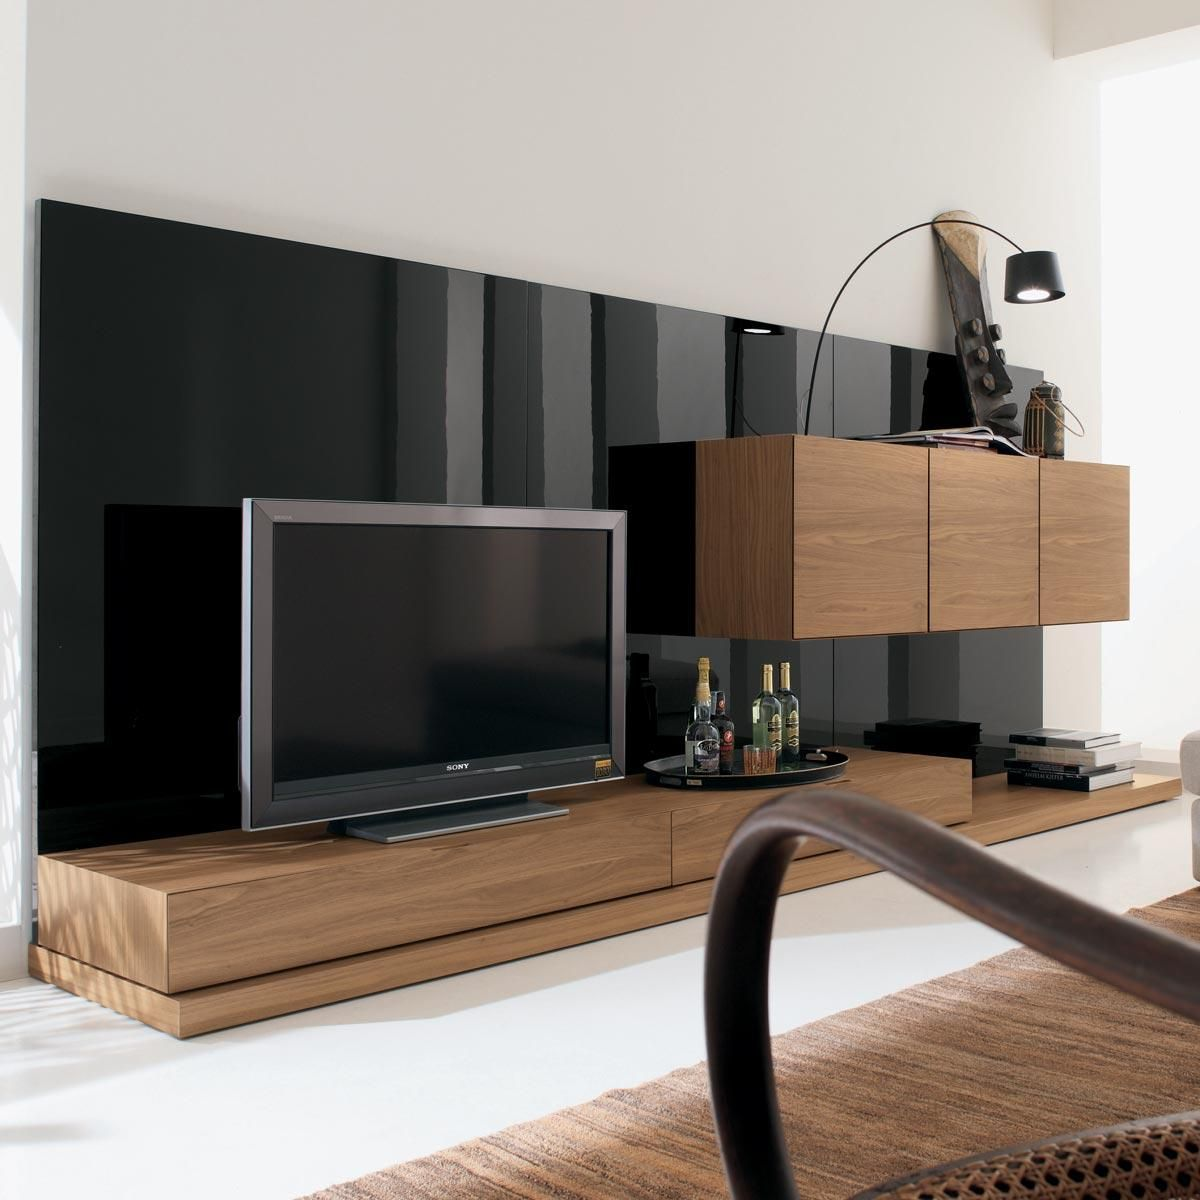 Moder Furniture Truly Very Good And Trendy Modern Furniture